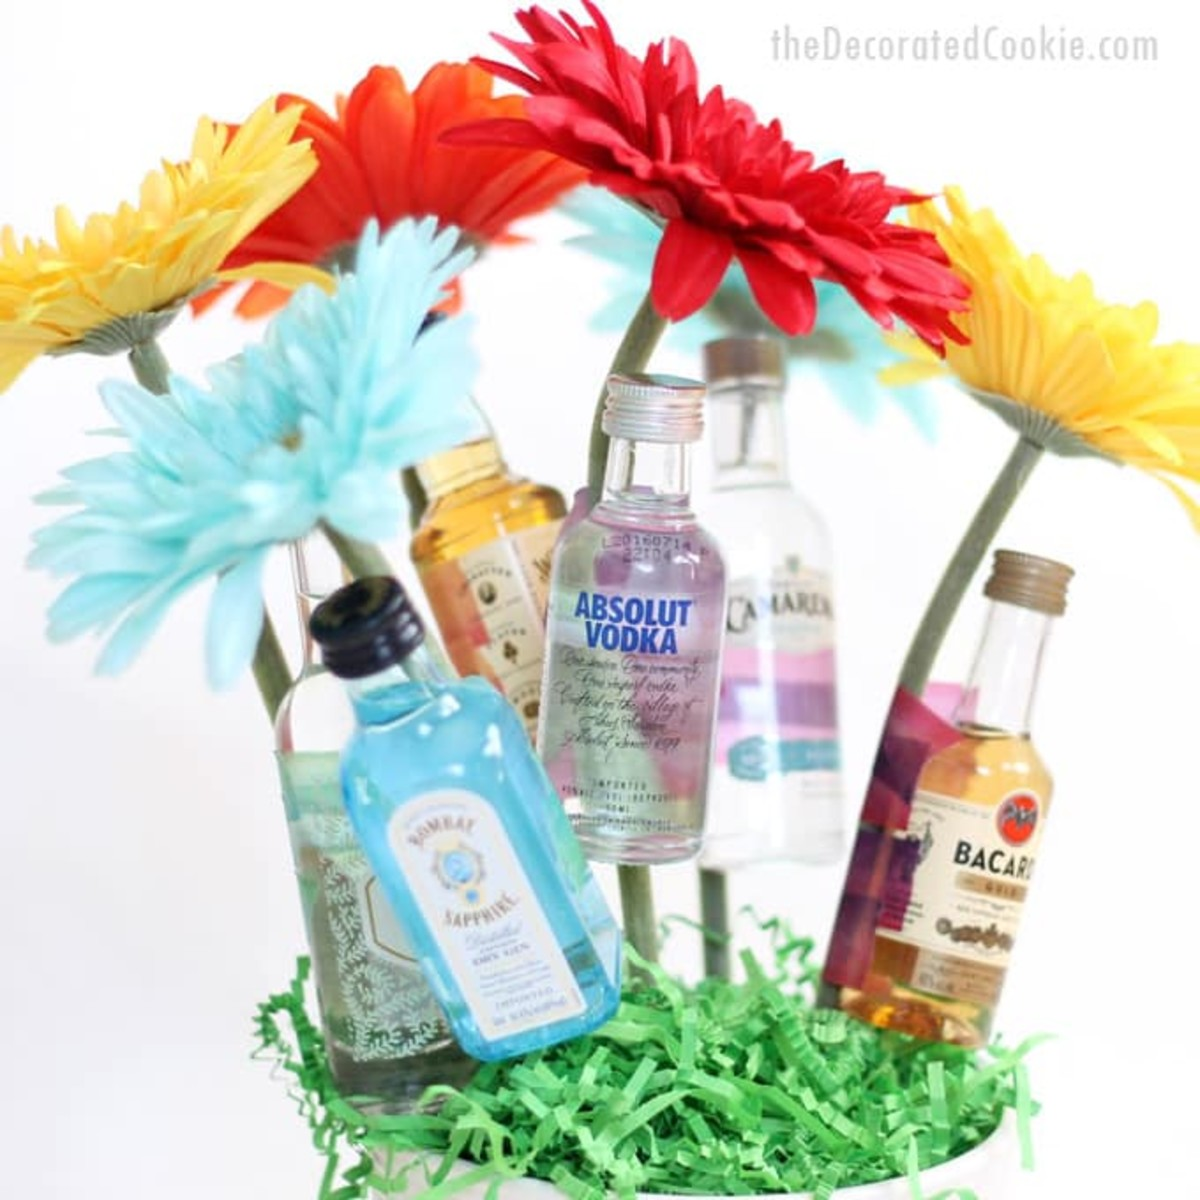 Booze Bouquet from thedecoratedcookie.com